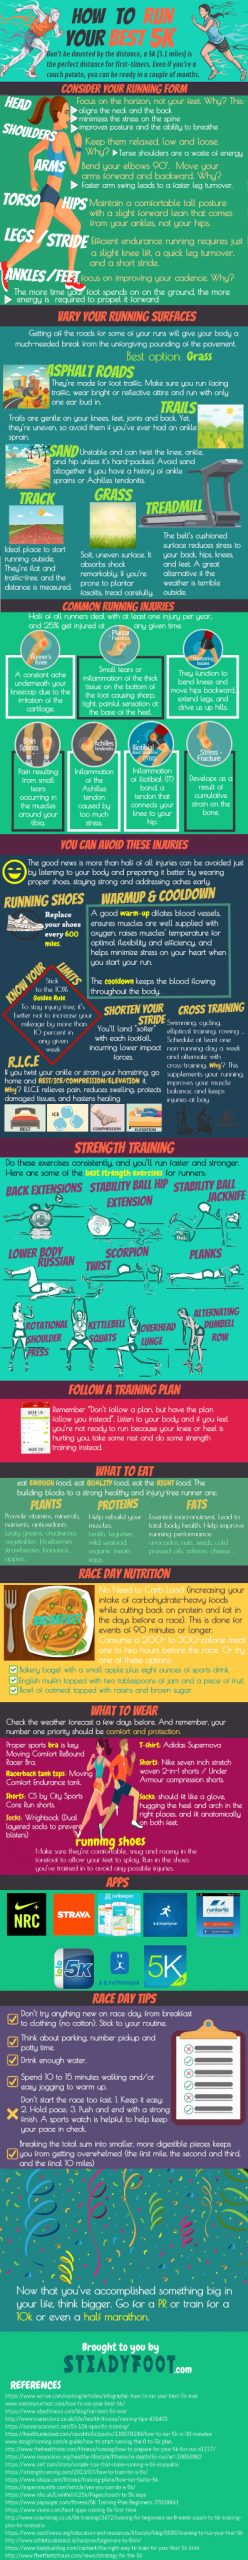 how-to-run-5k-infographic